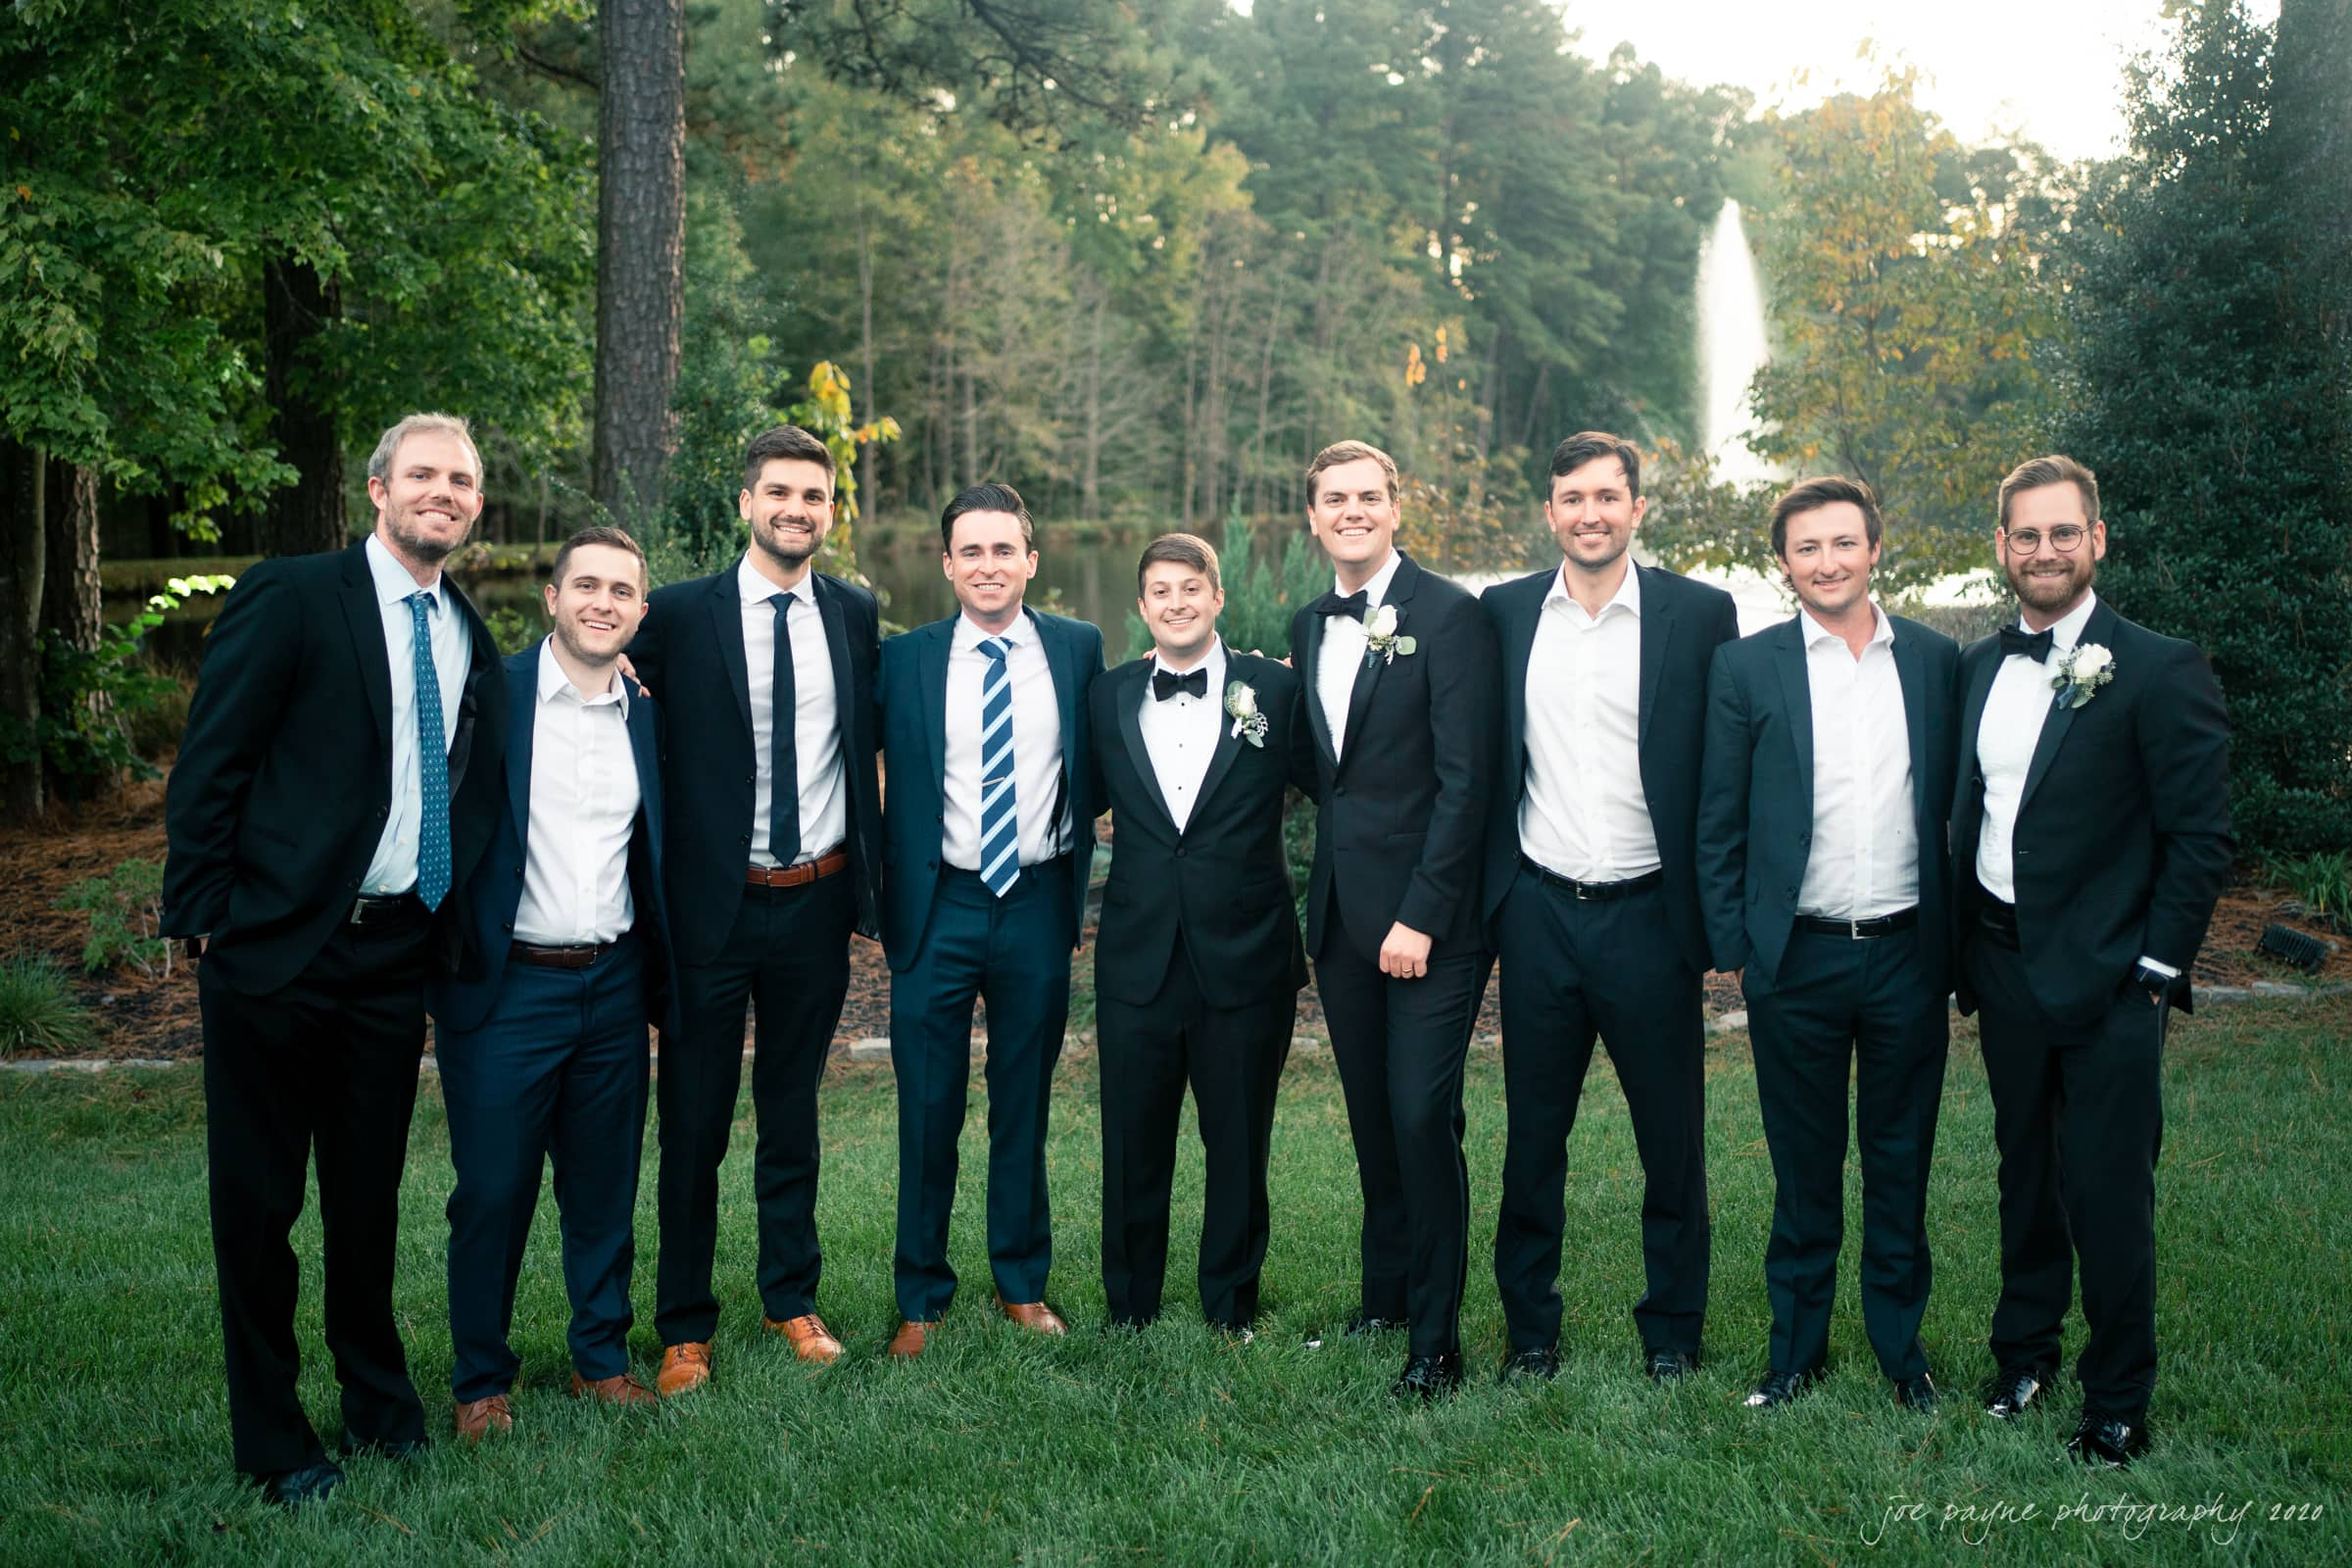 Pavilion at Angus Barn Wedding - groom and friends